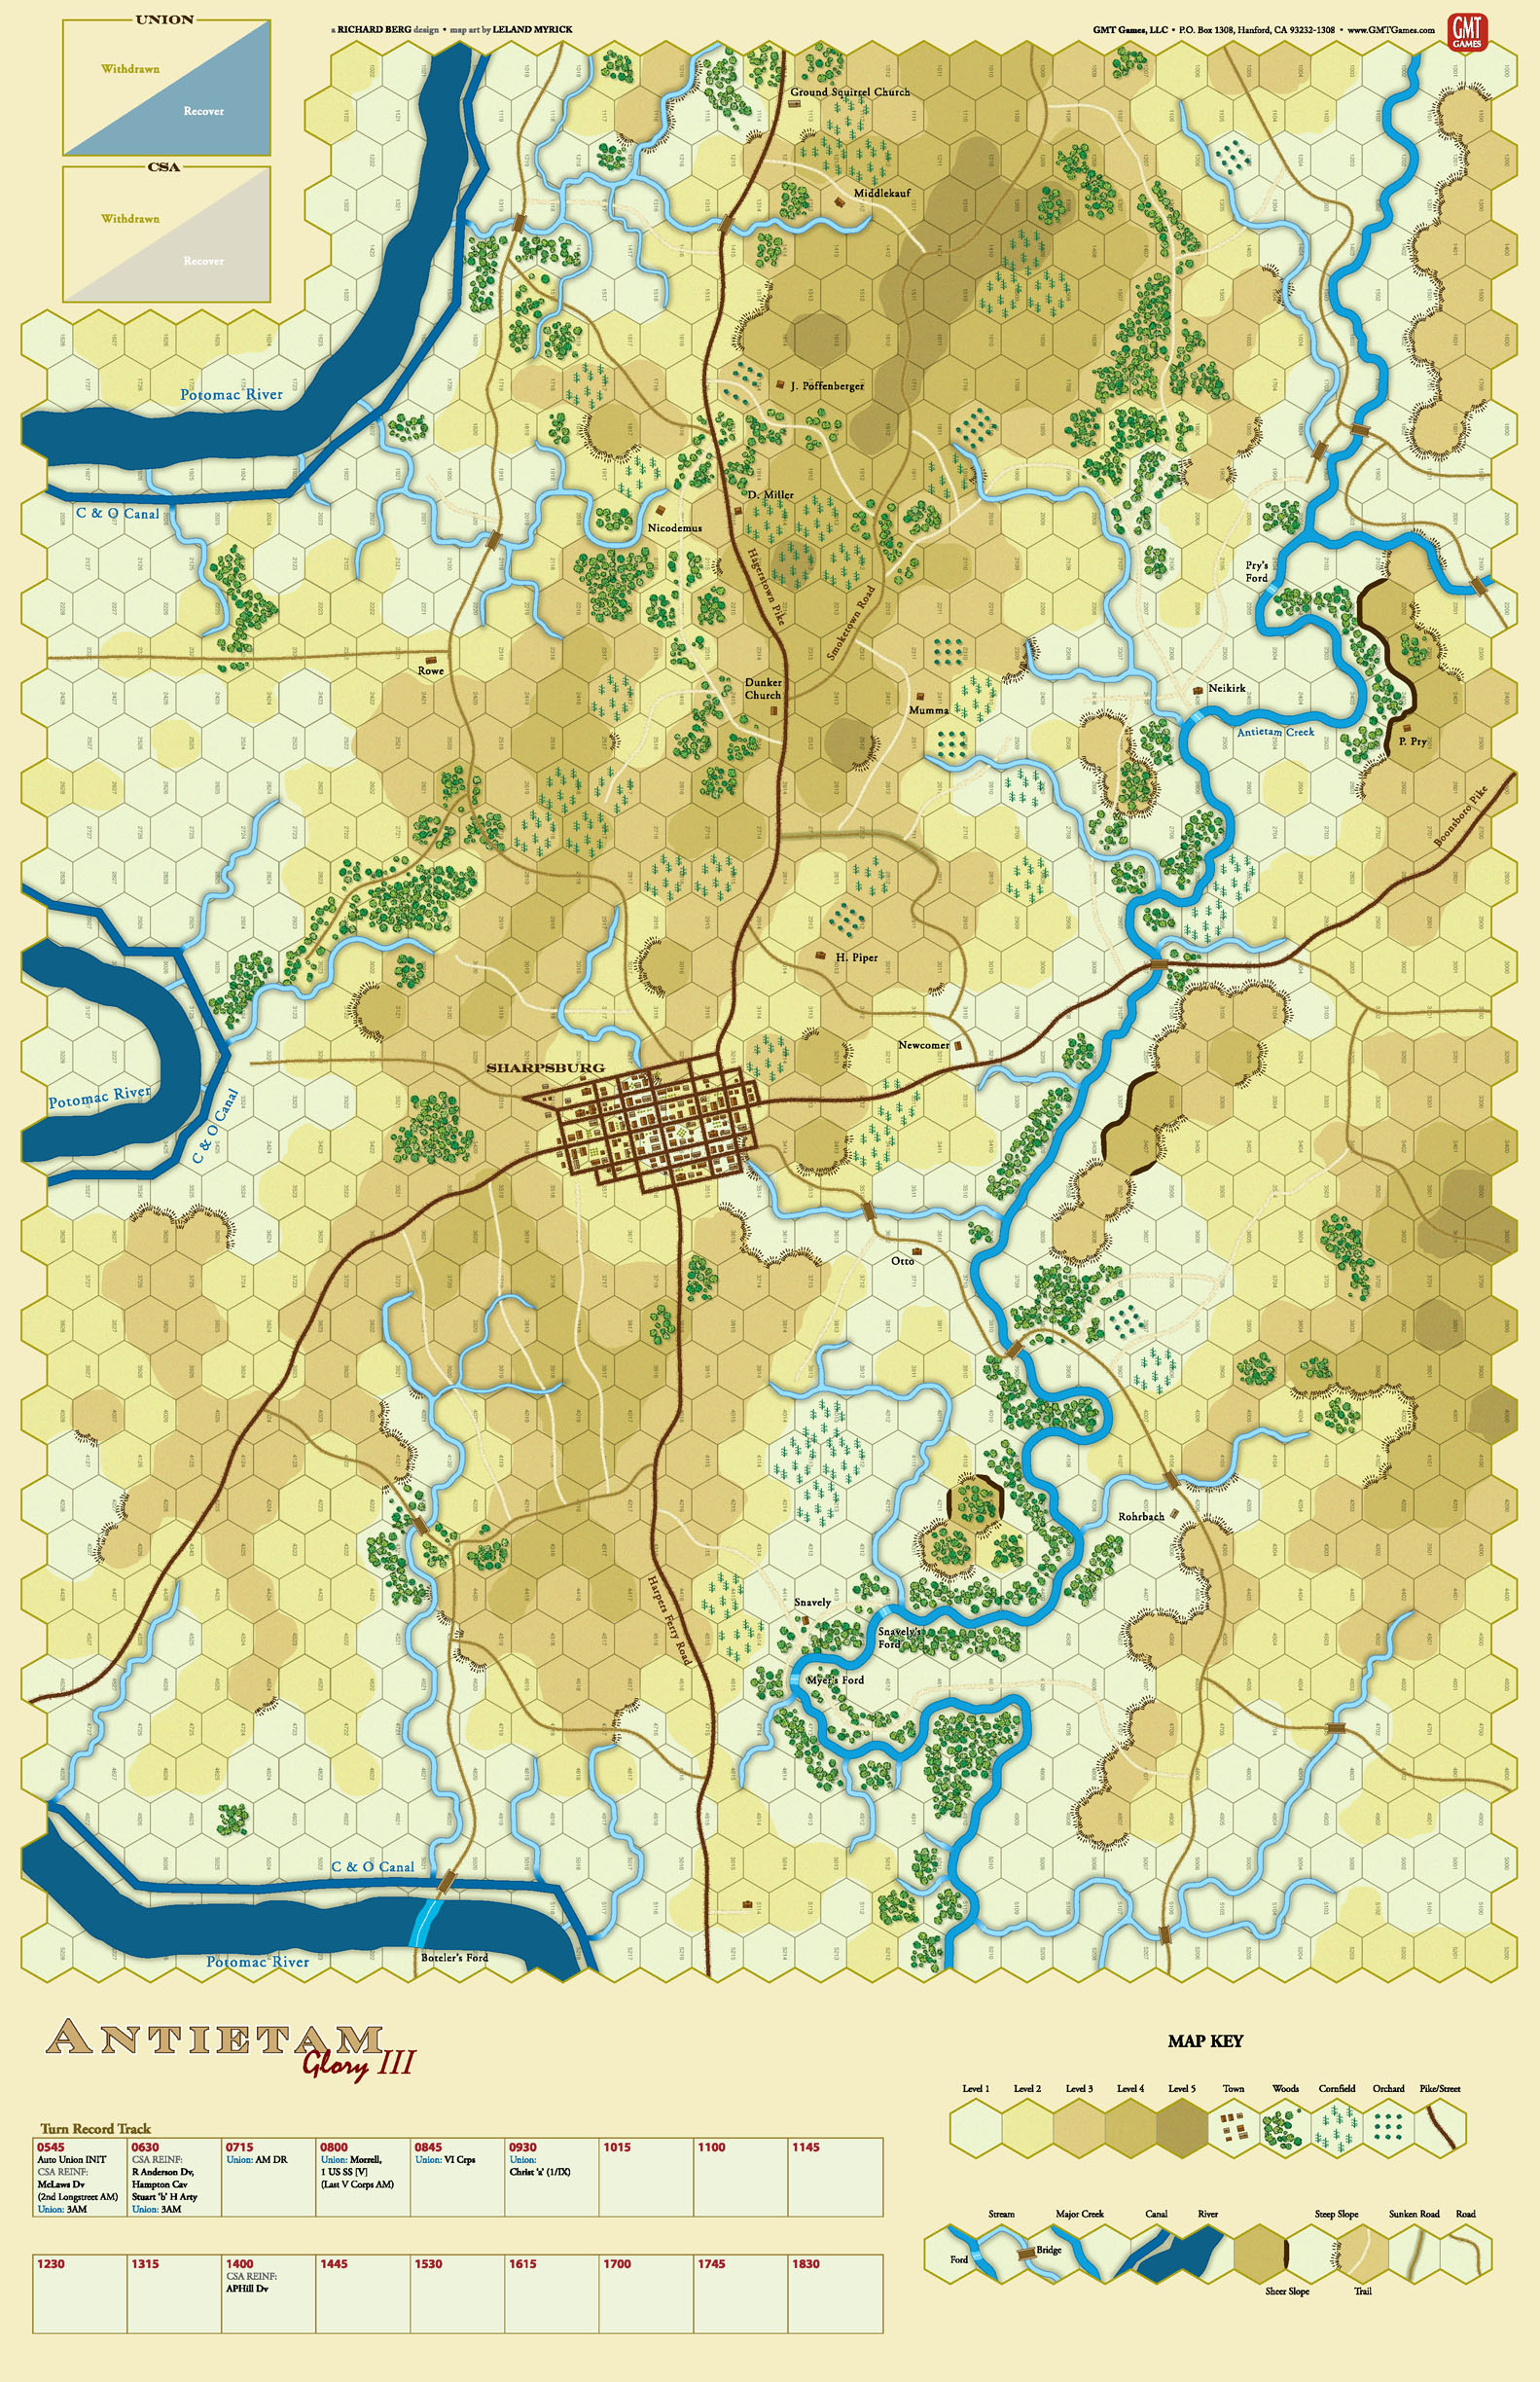 antietam map 987 kb